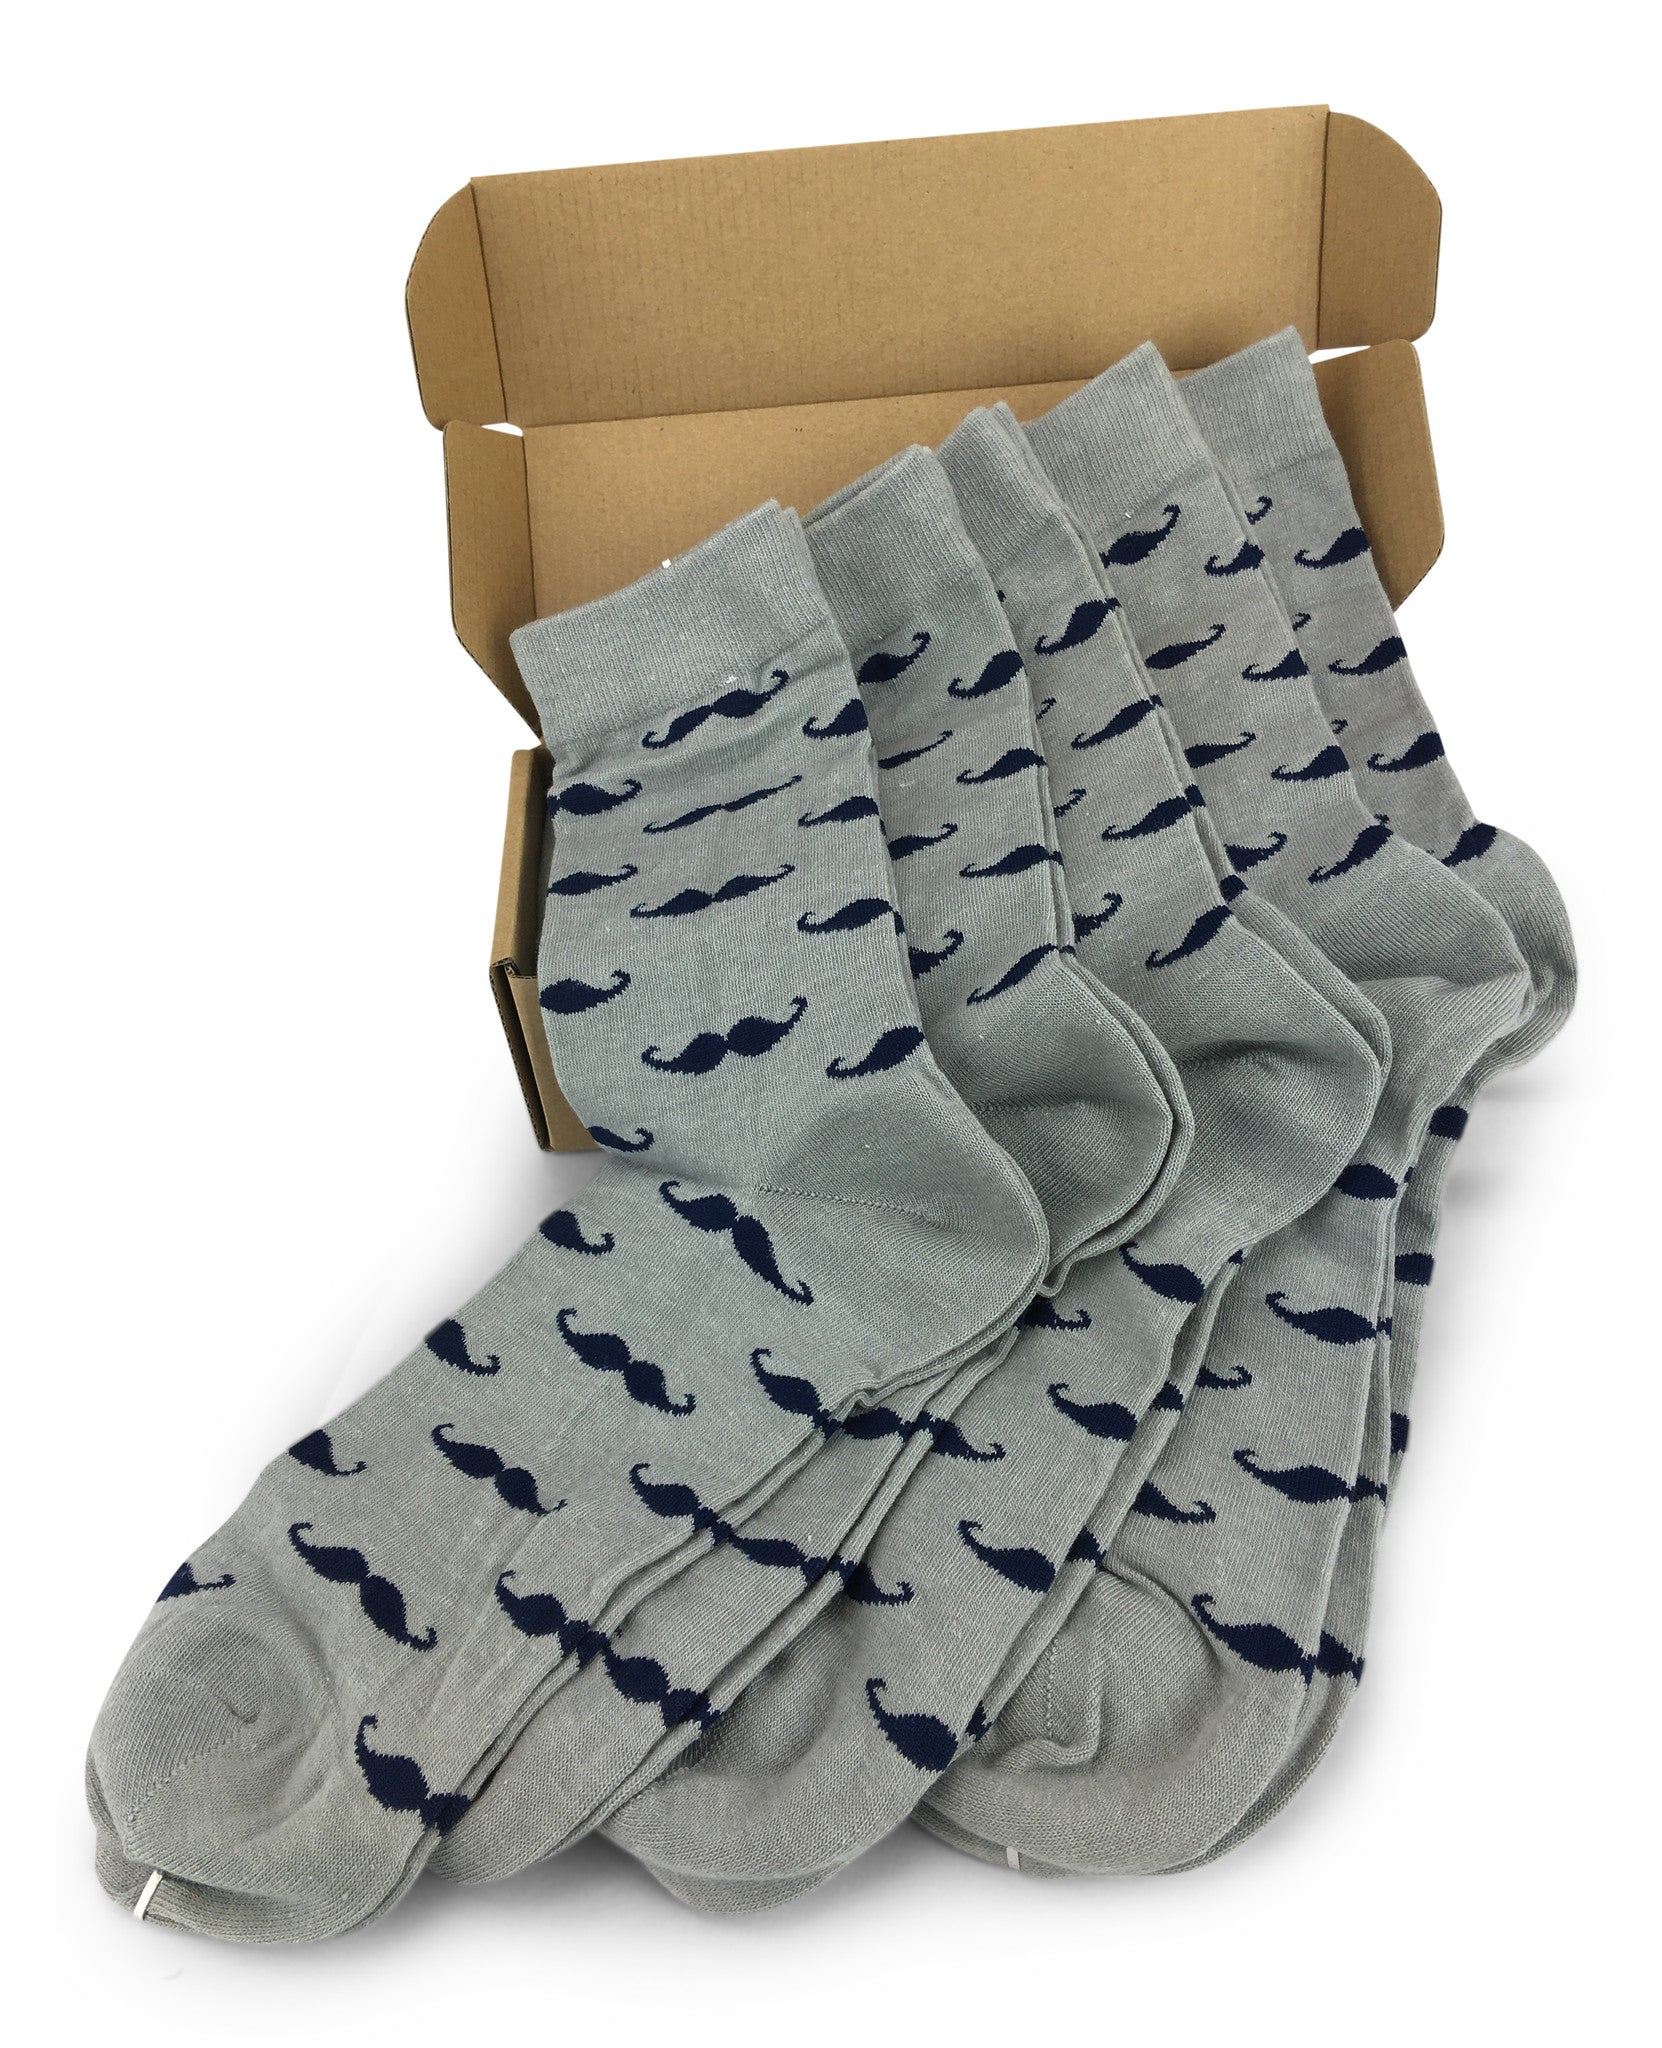 Wedding Party Socks   Gray With Navy Mustaches